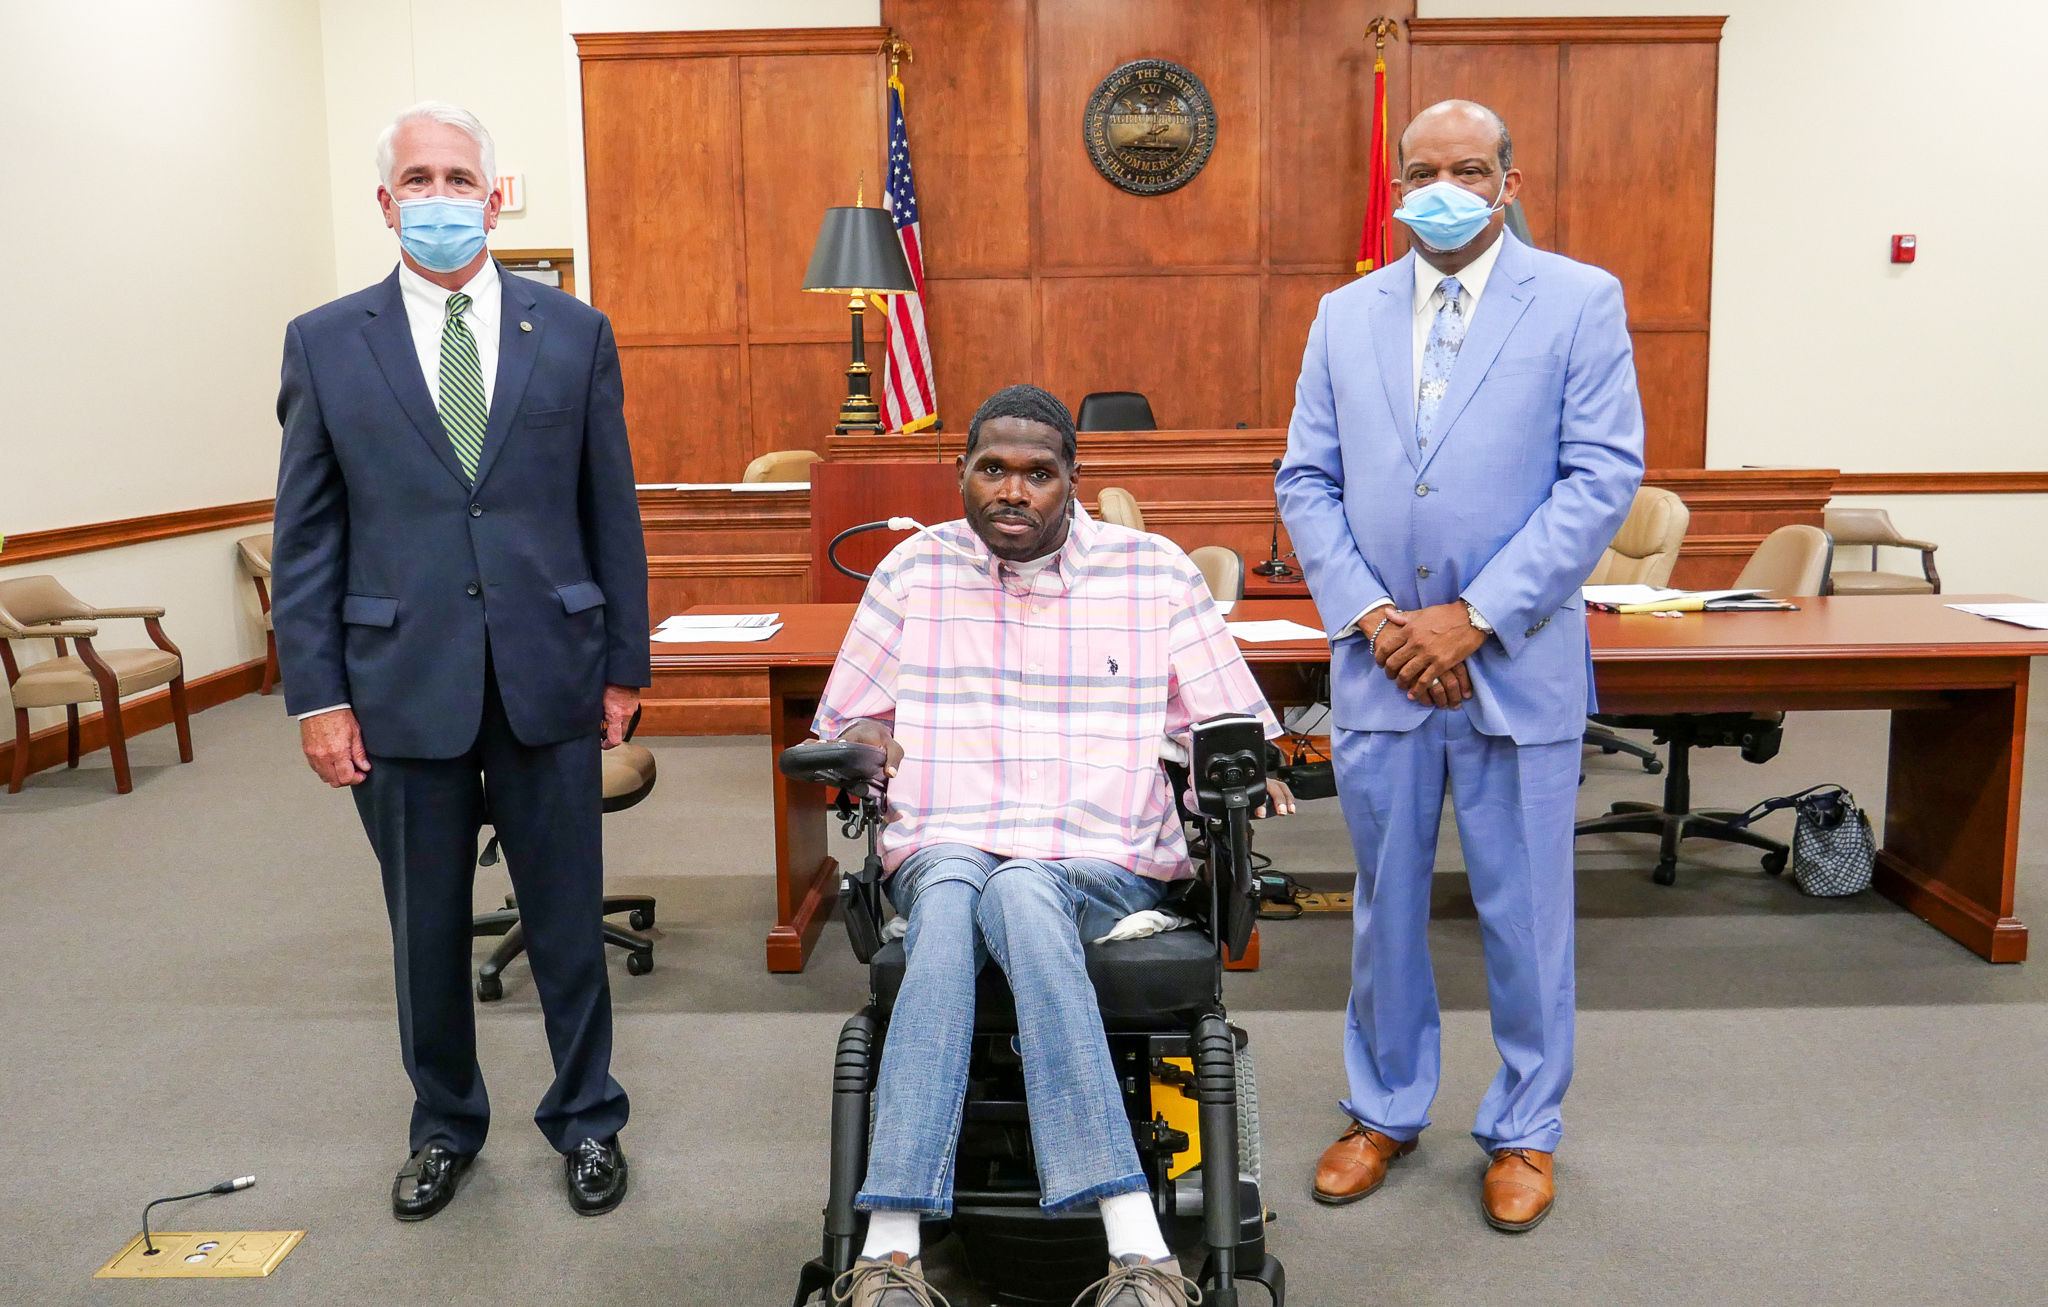 Three men in court room two standing one in wheelchair